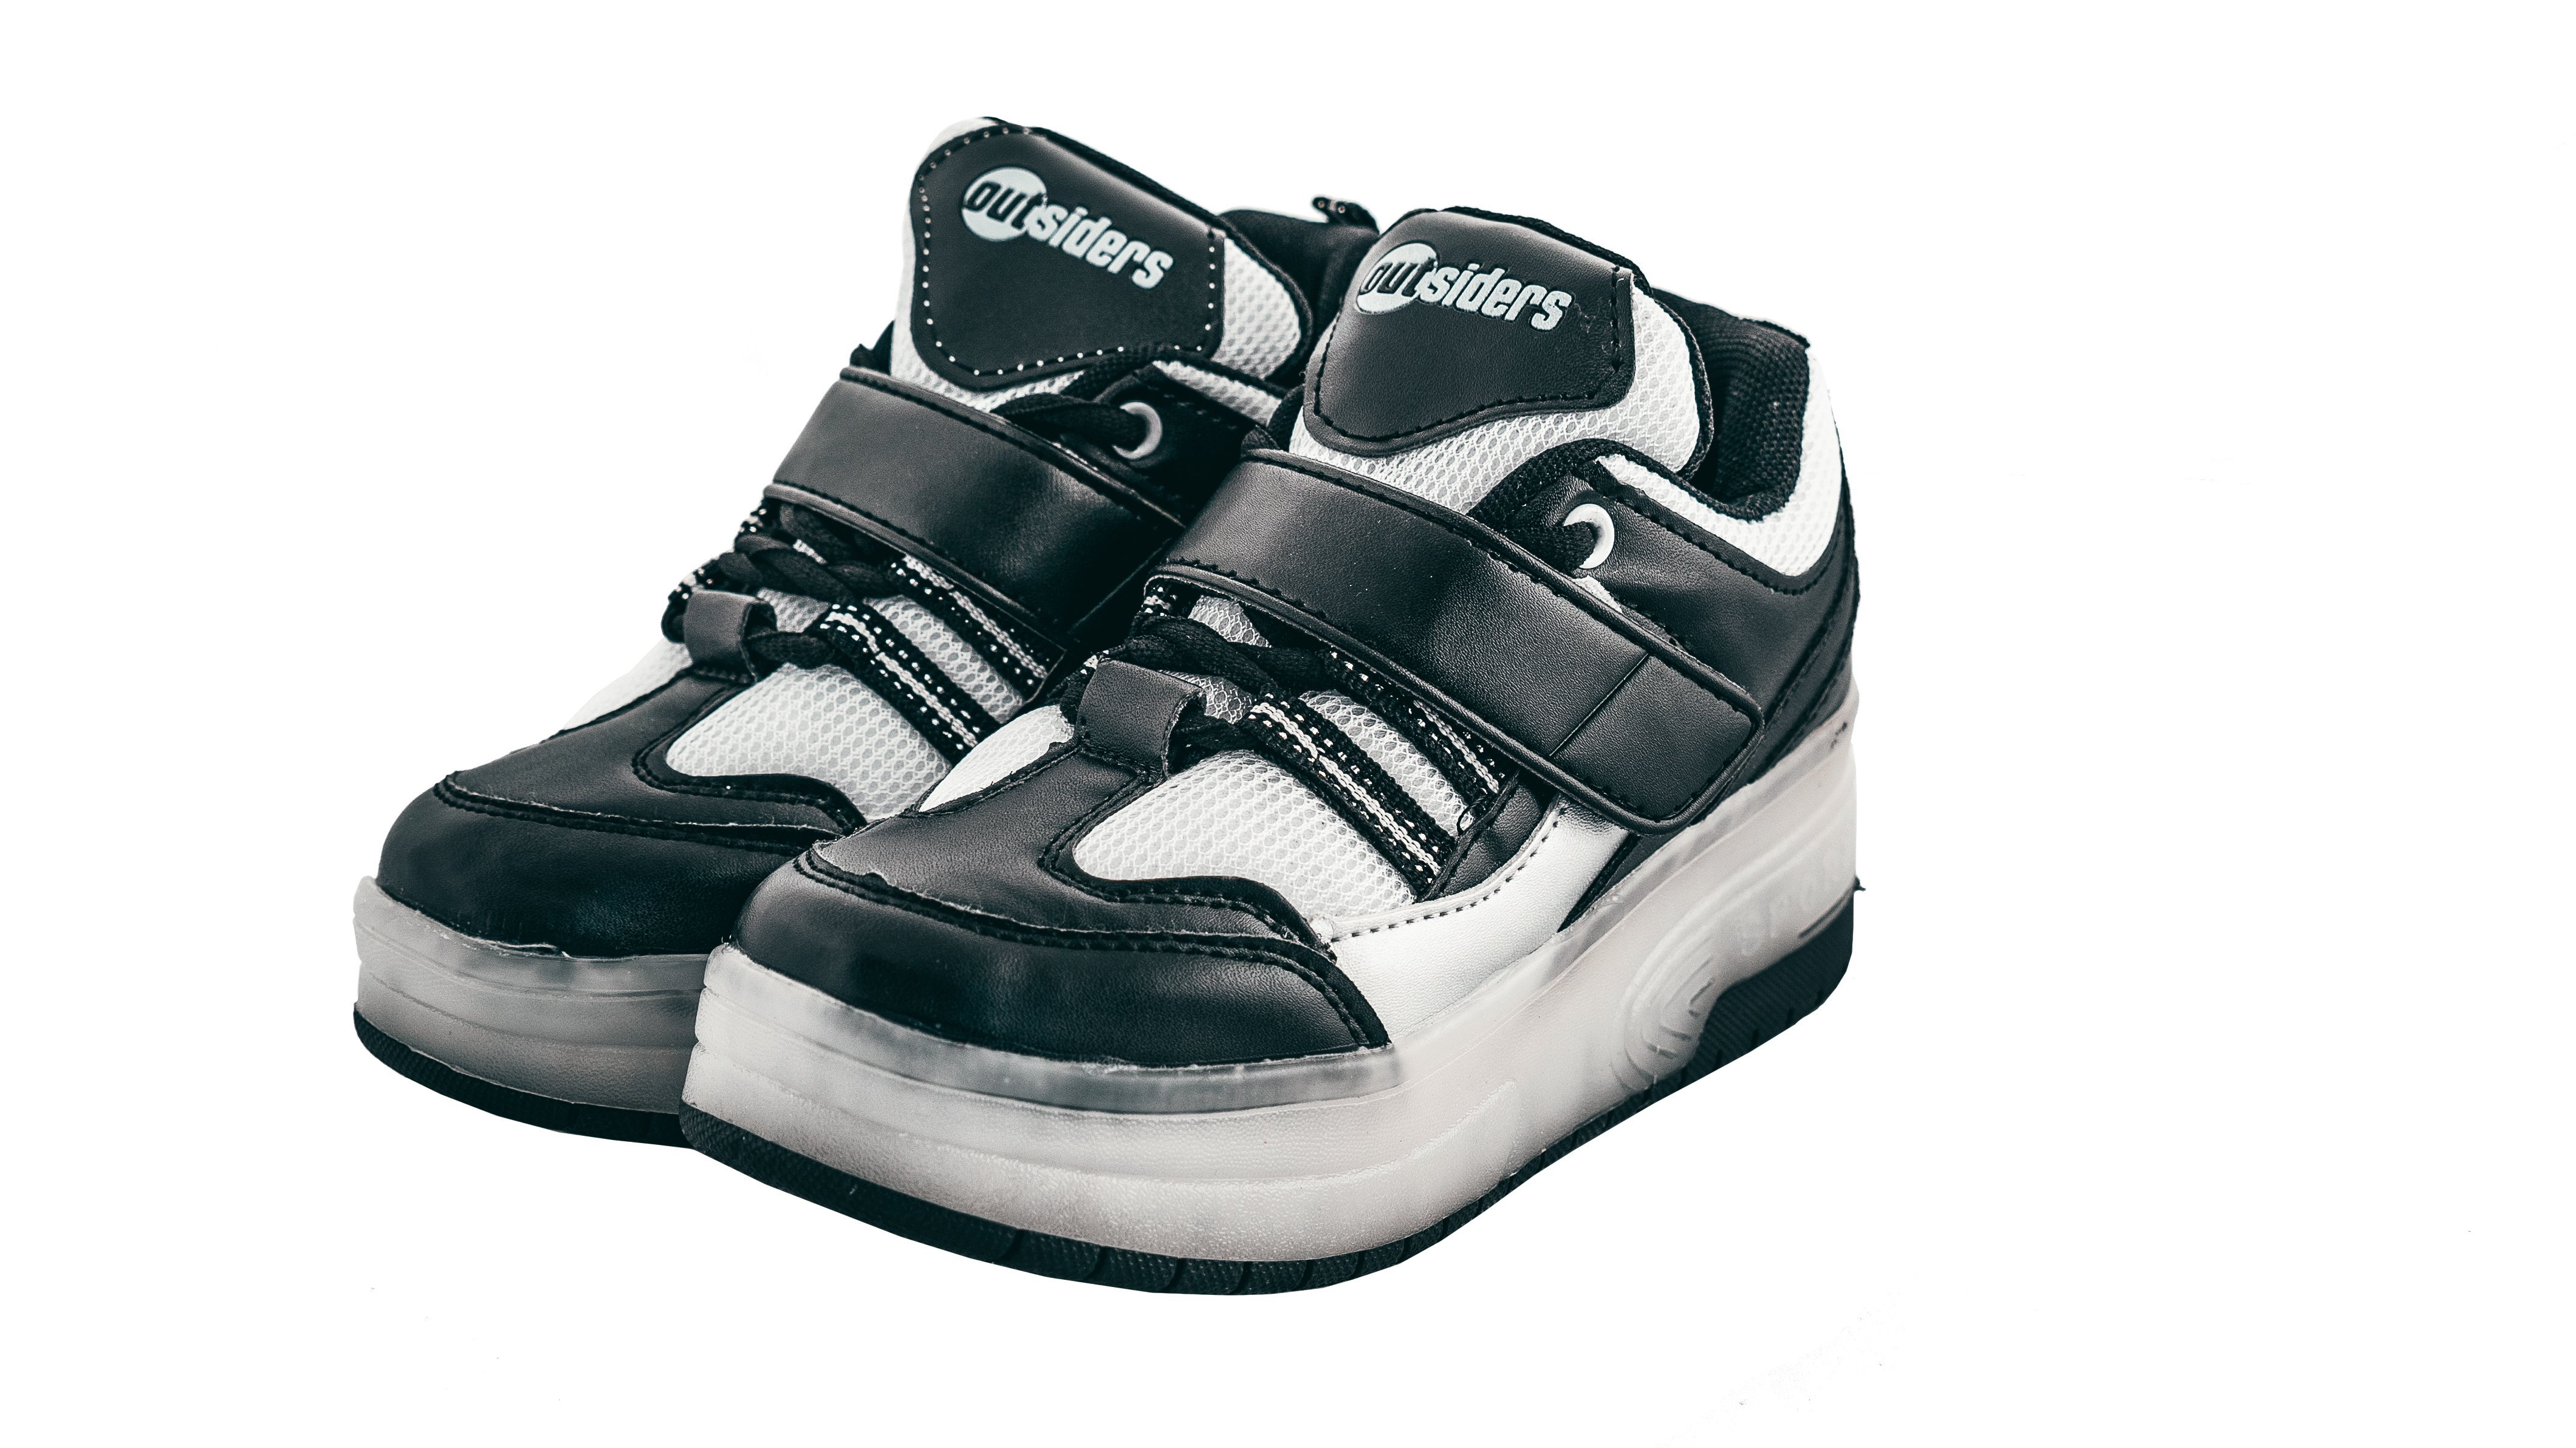 Outsiders - Roller Shoes with LED - Black/Silver (size: 30)